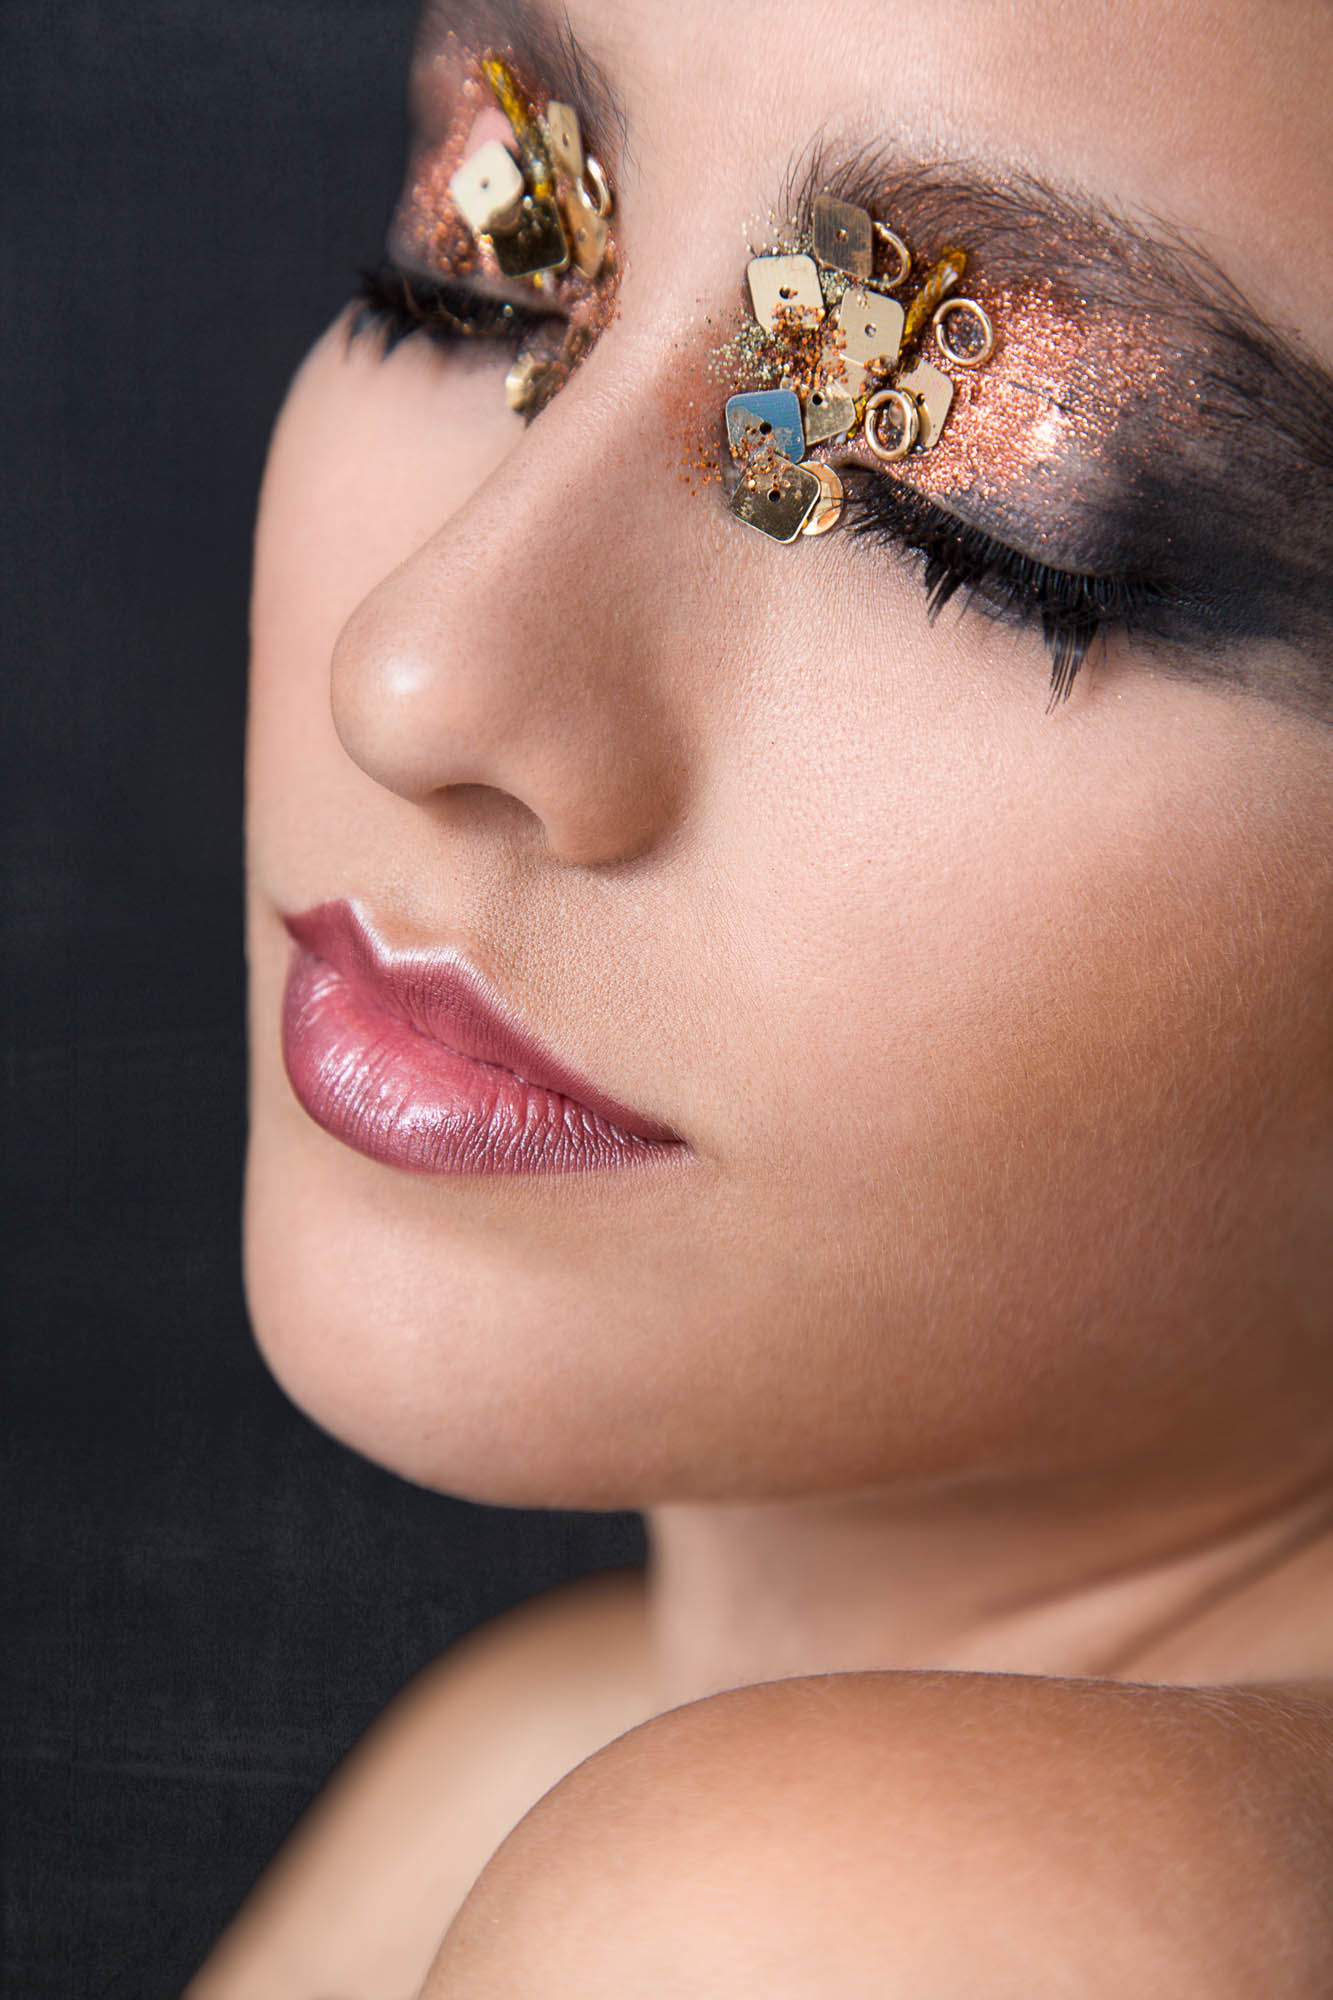 Headshot of a beauty model with extravagant make up with her eyes shut